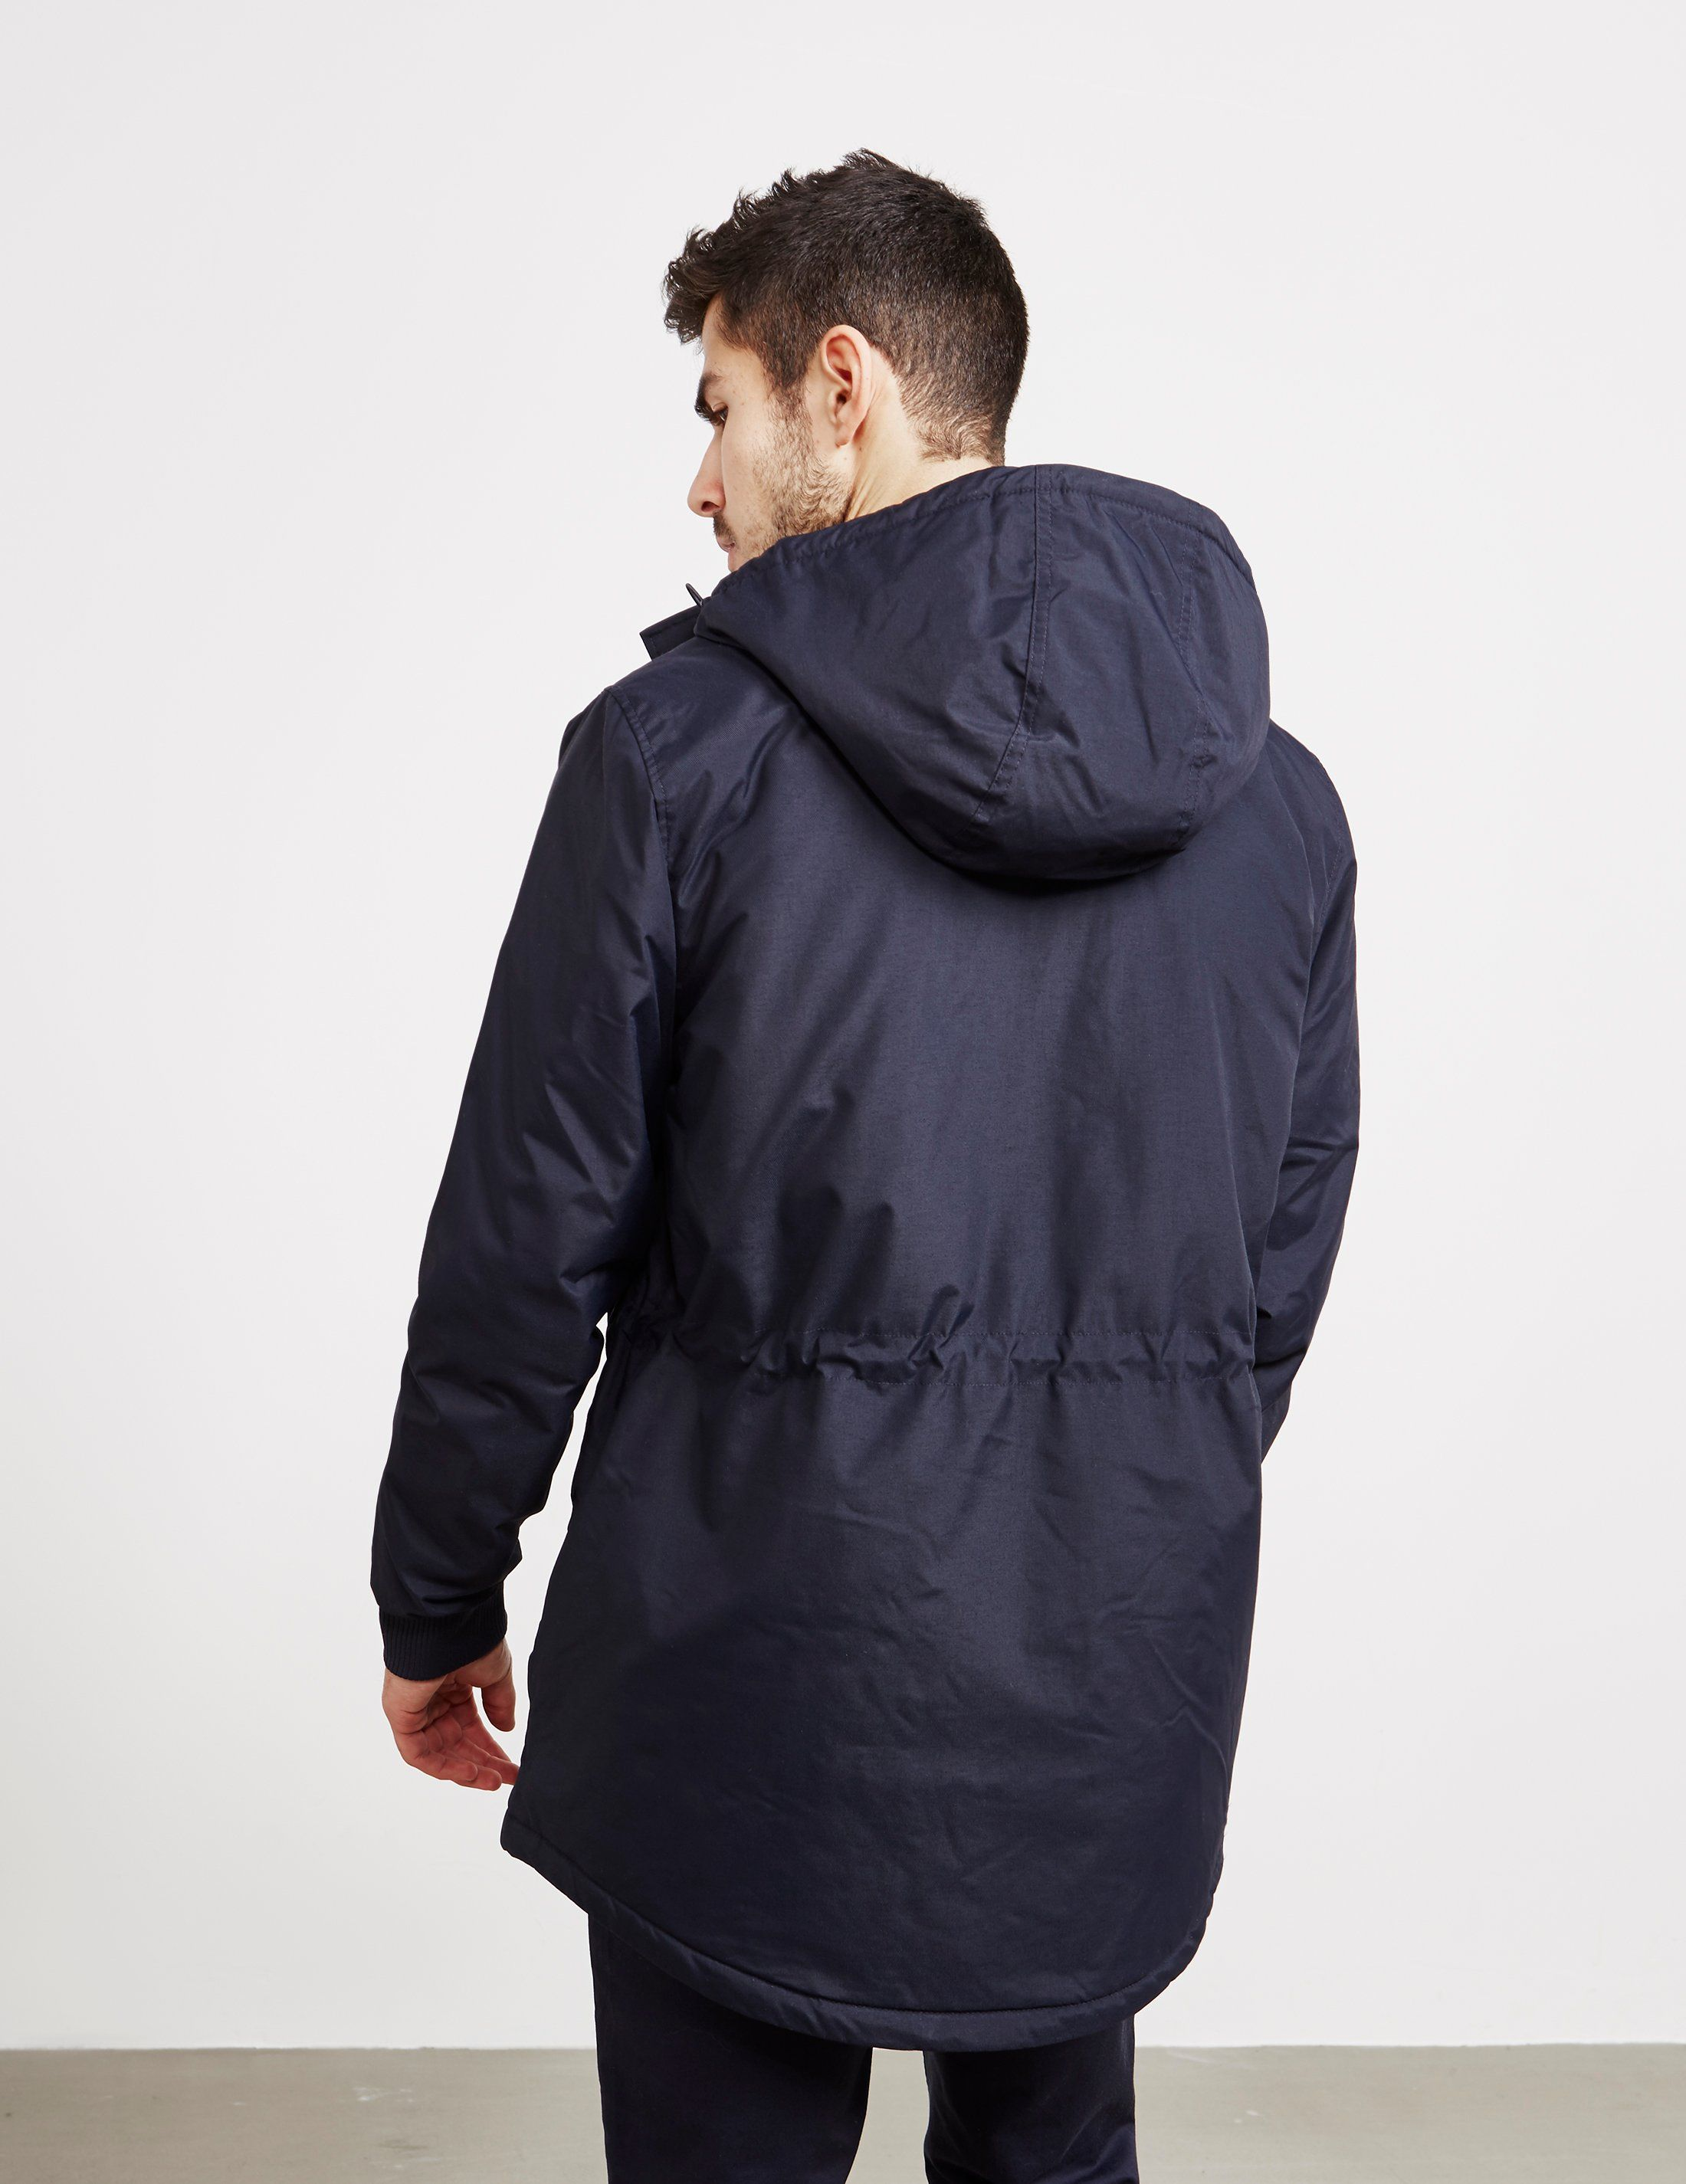 Fred Perry Stockport Lightweight Jacket